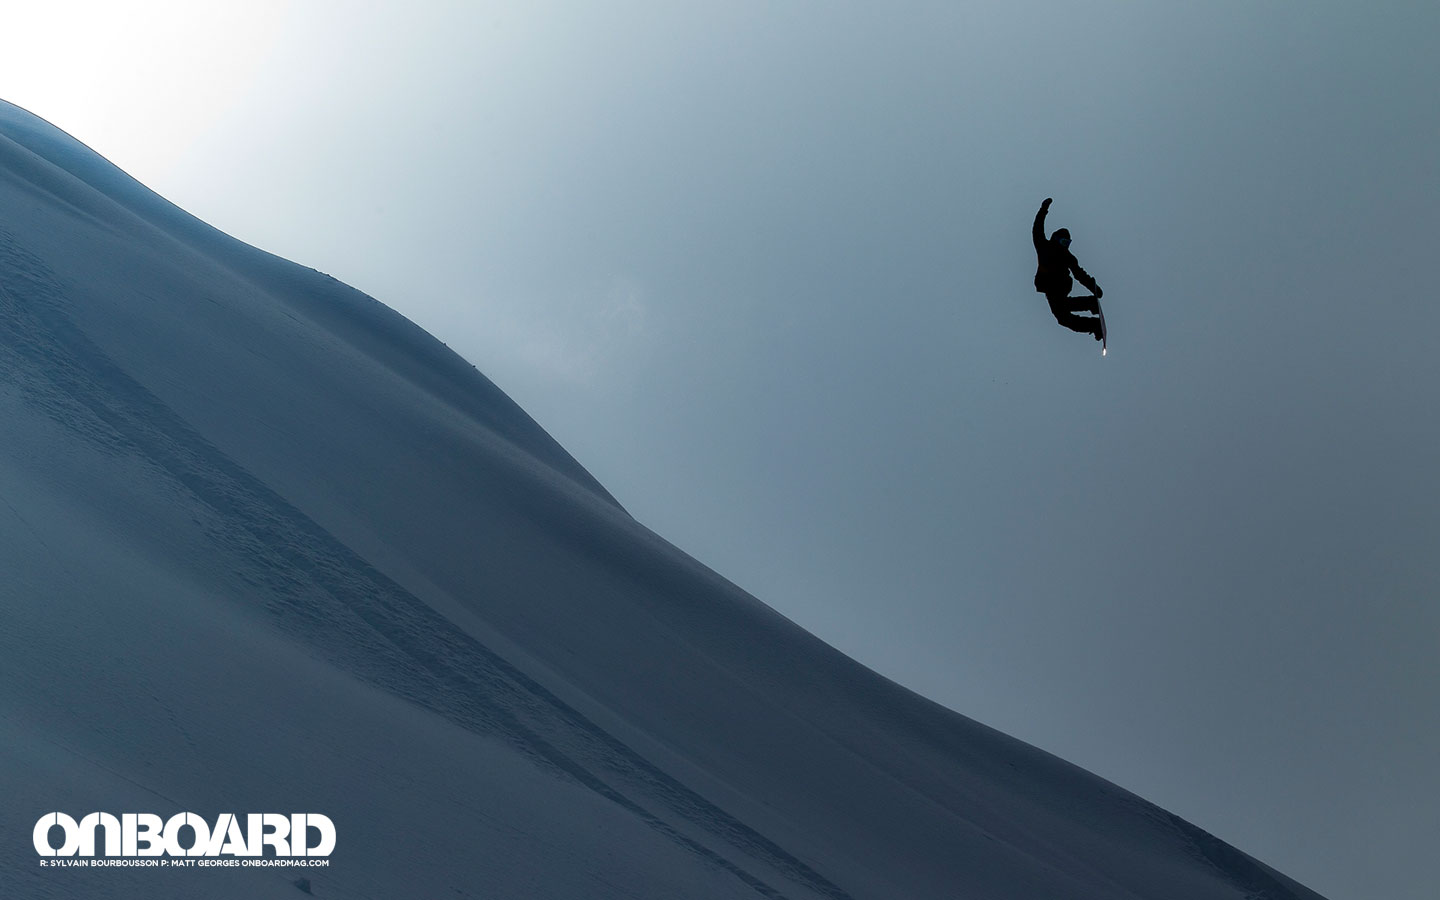 1440x900 - Snowboarding Wallpapers 25